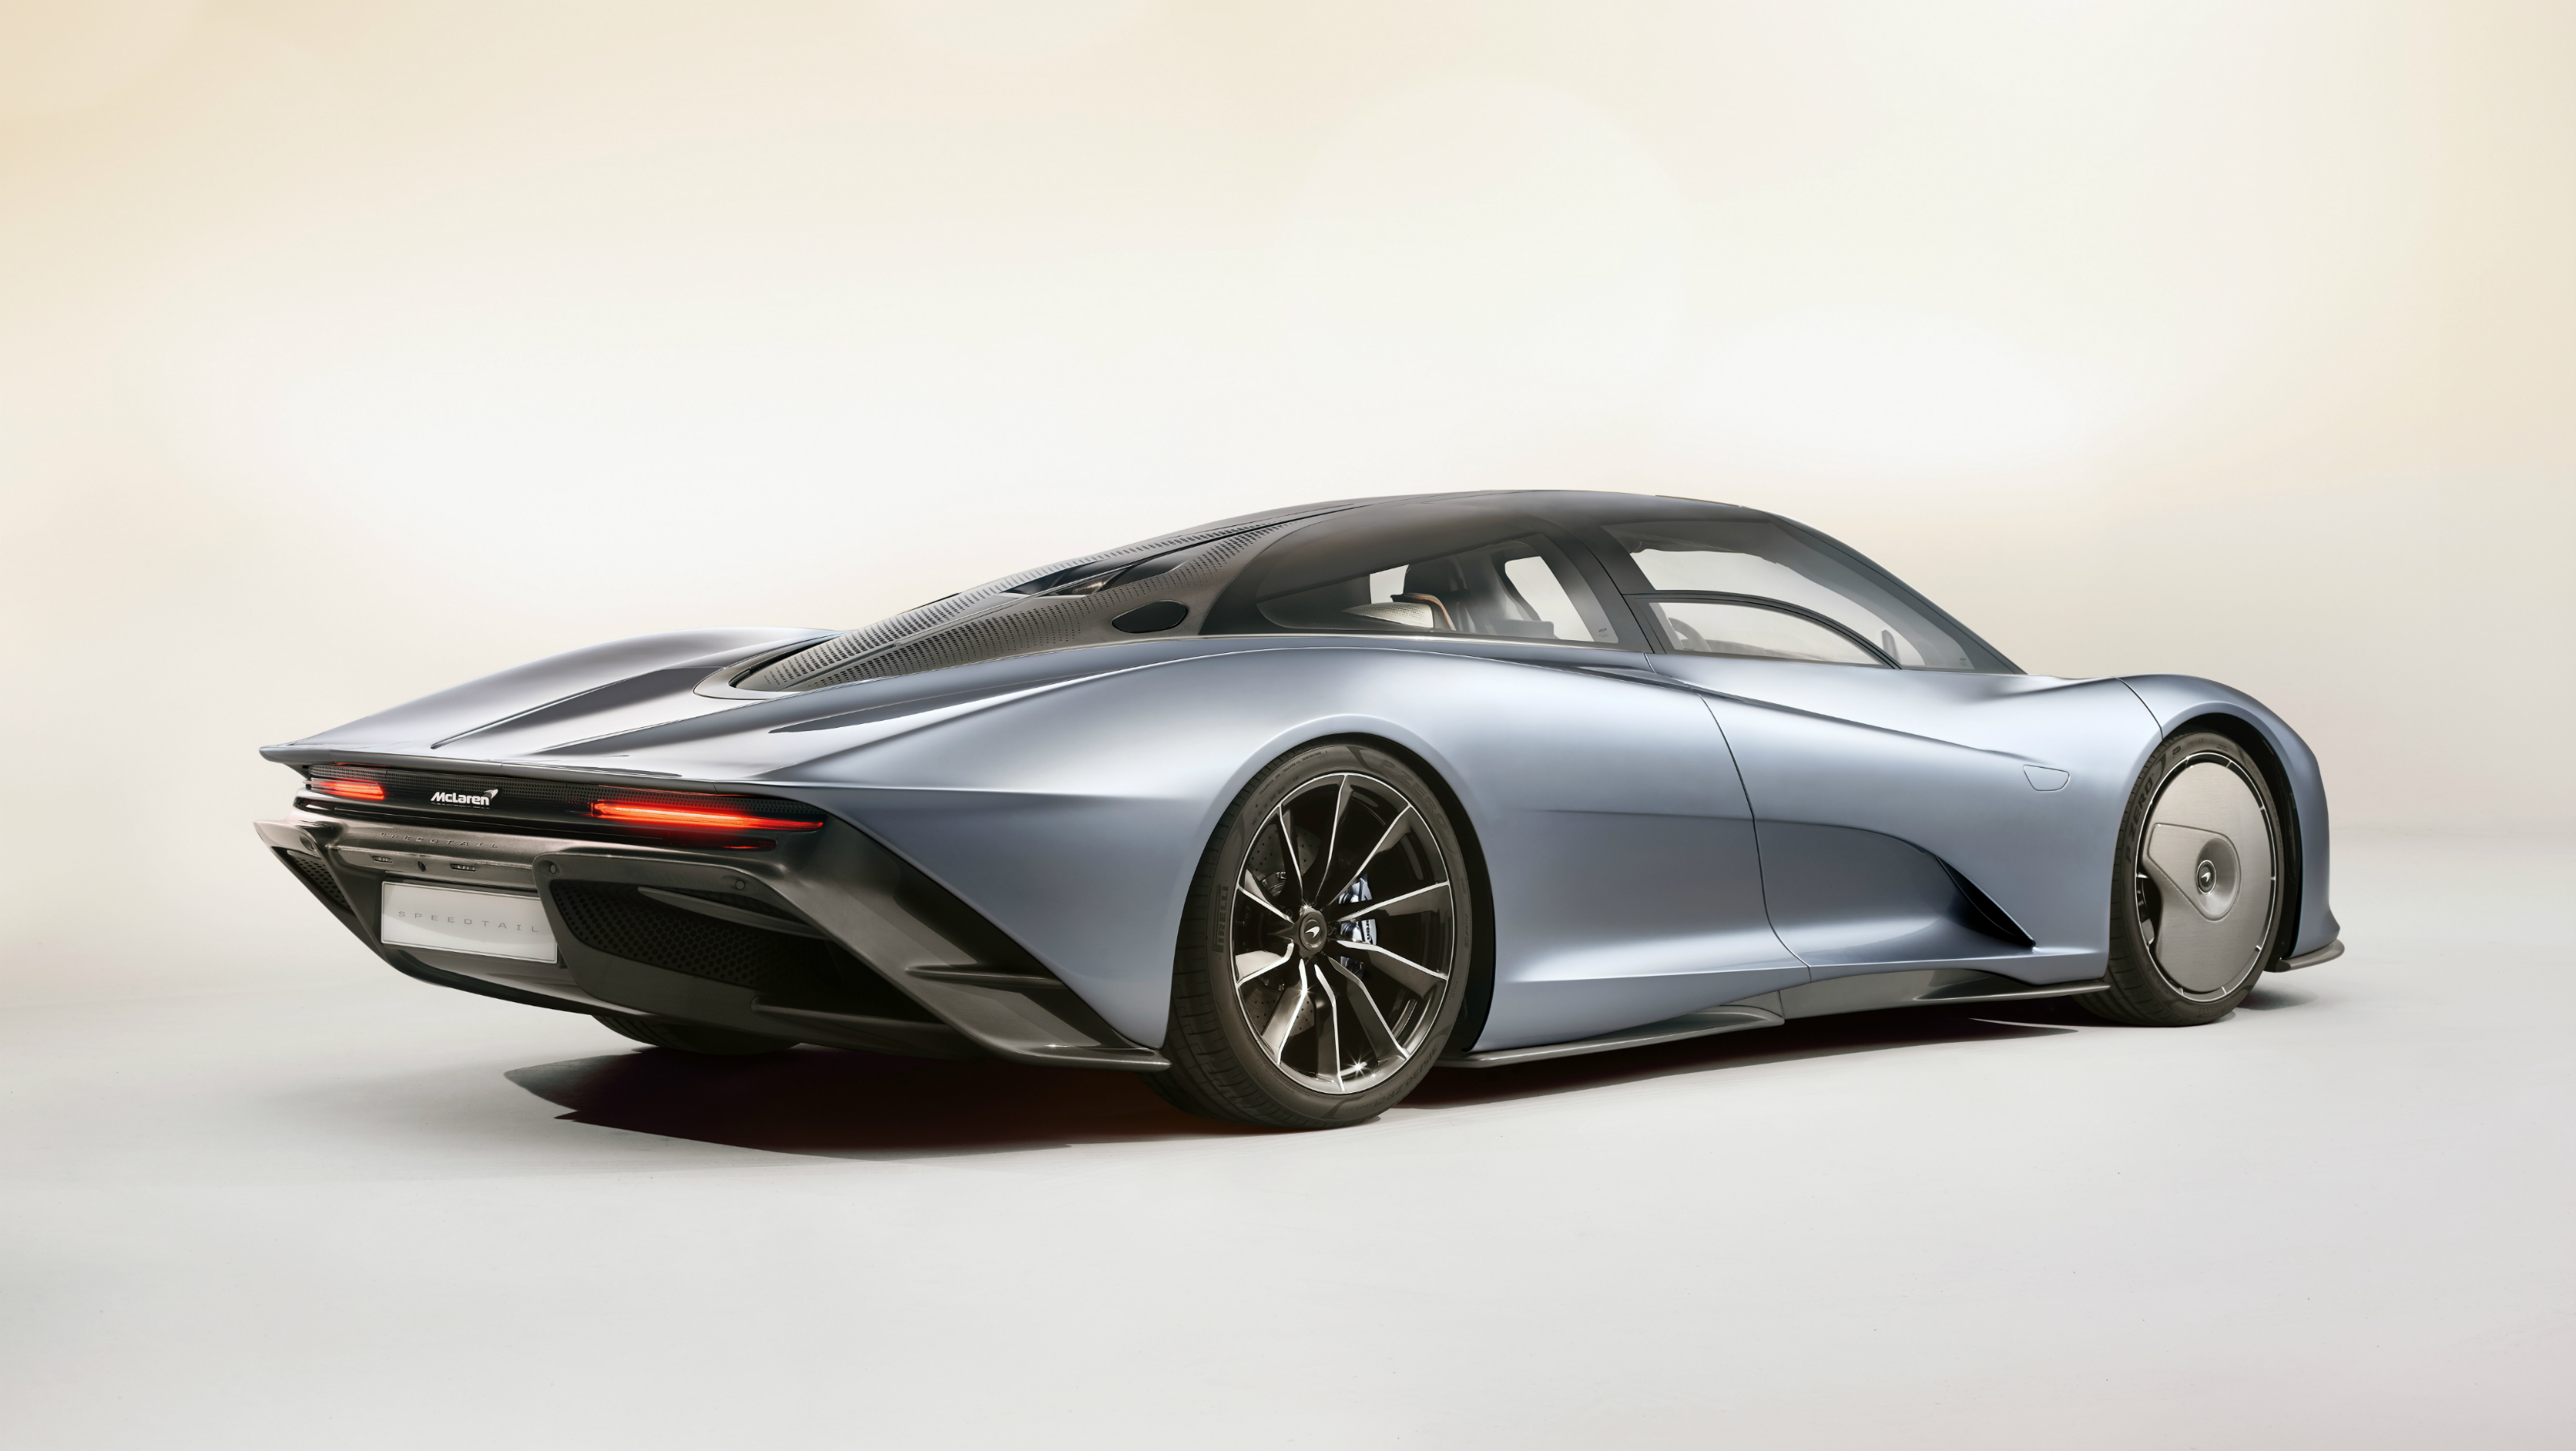 McLaren Speedtail revealed to the world